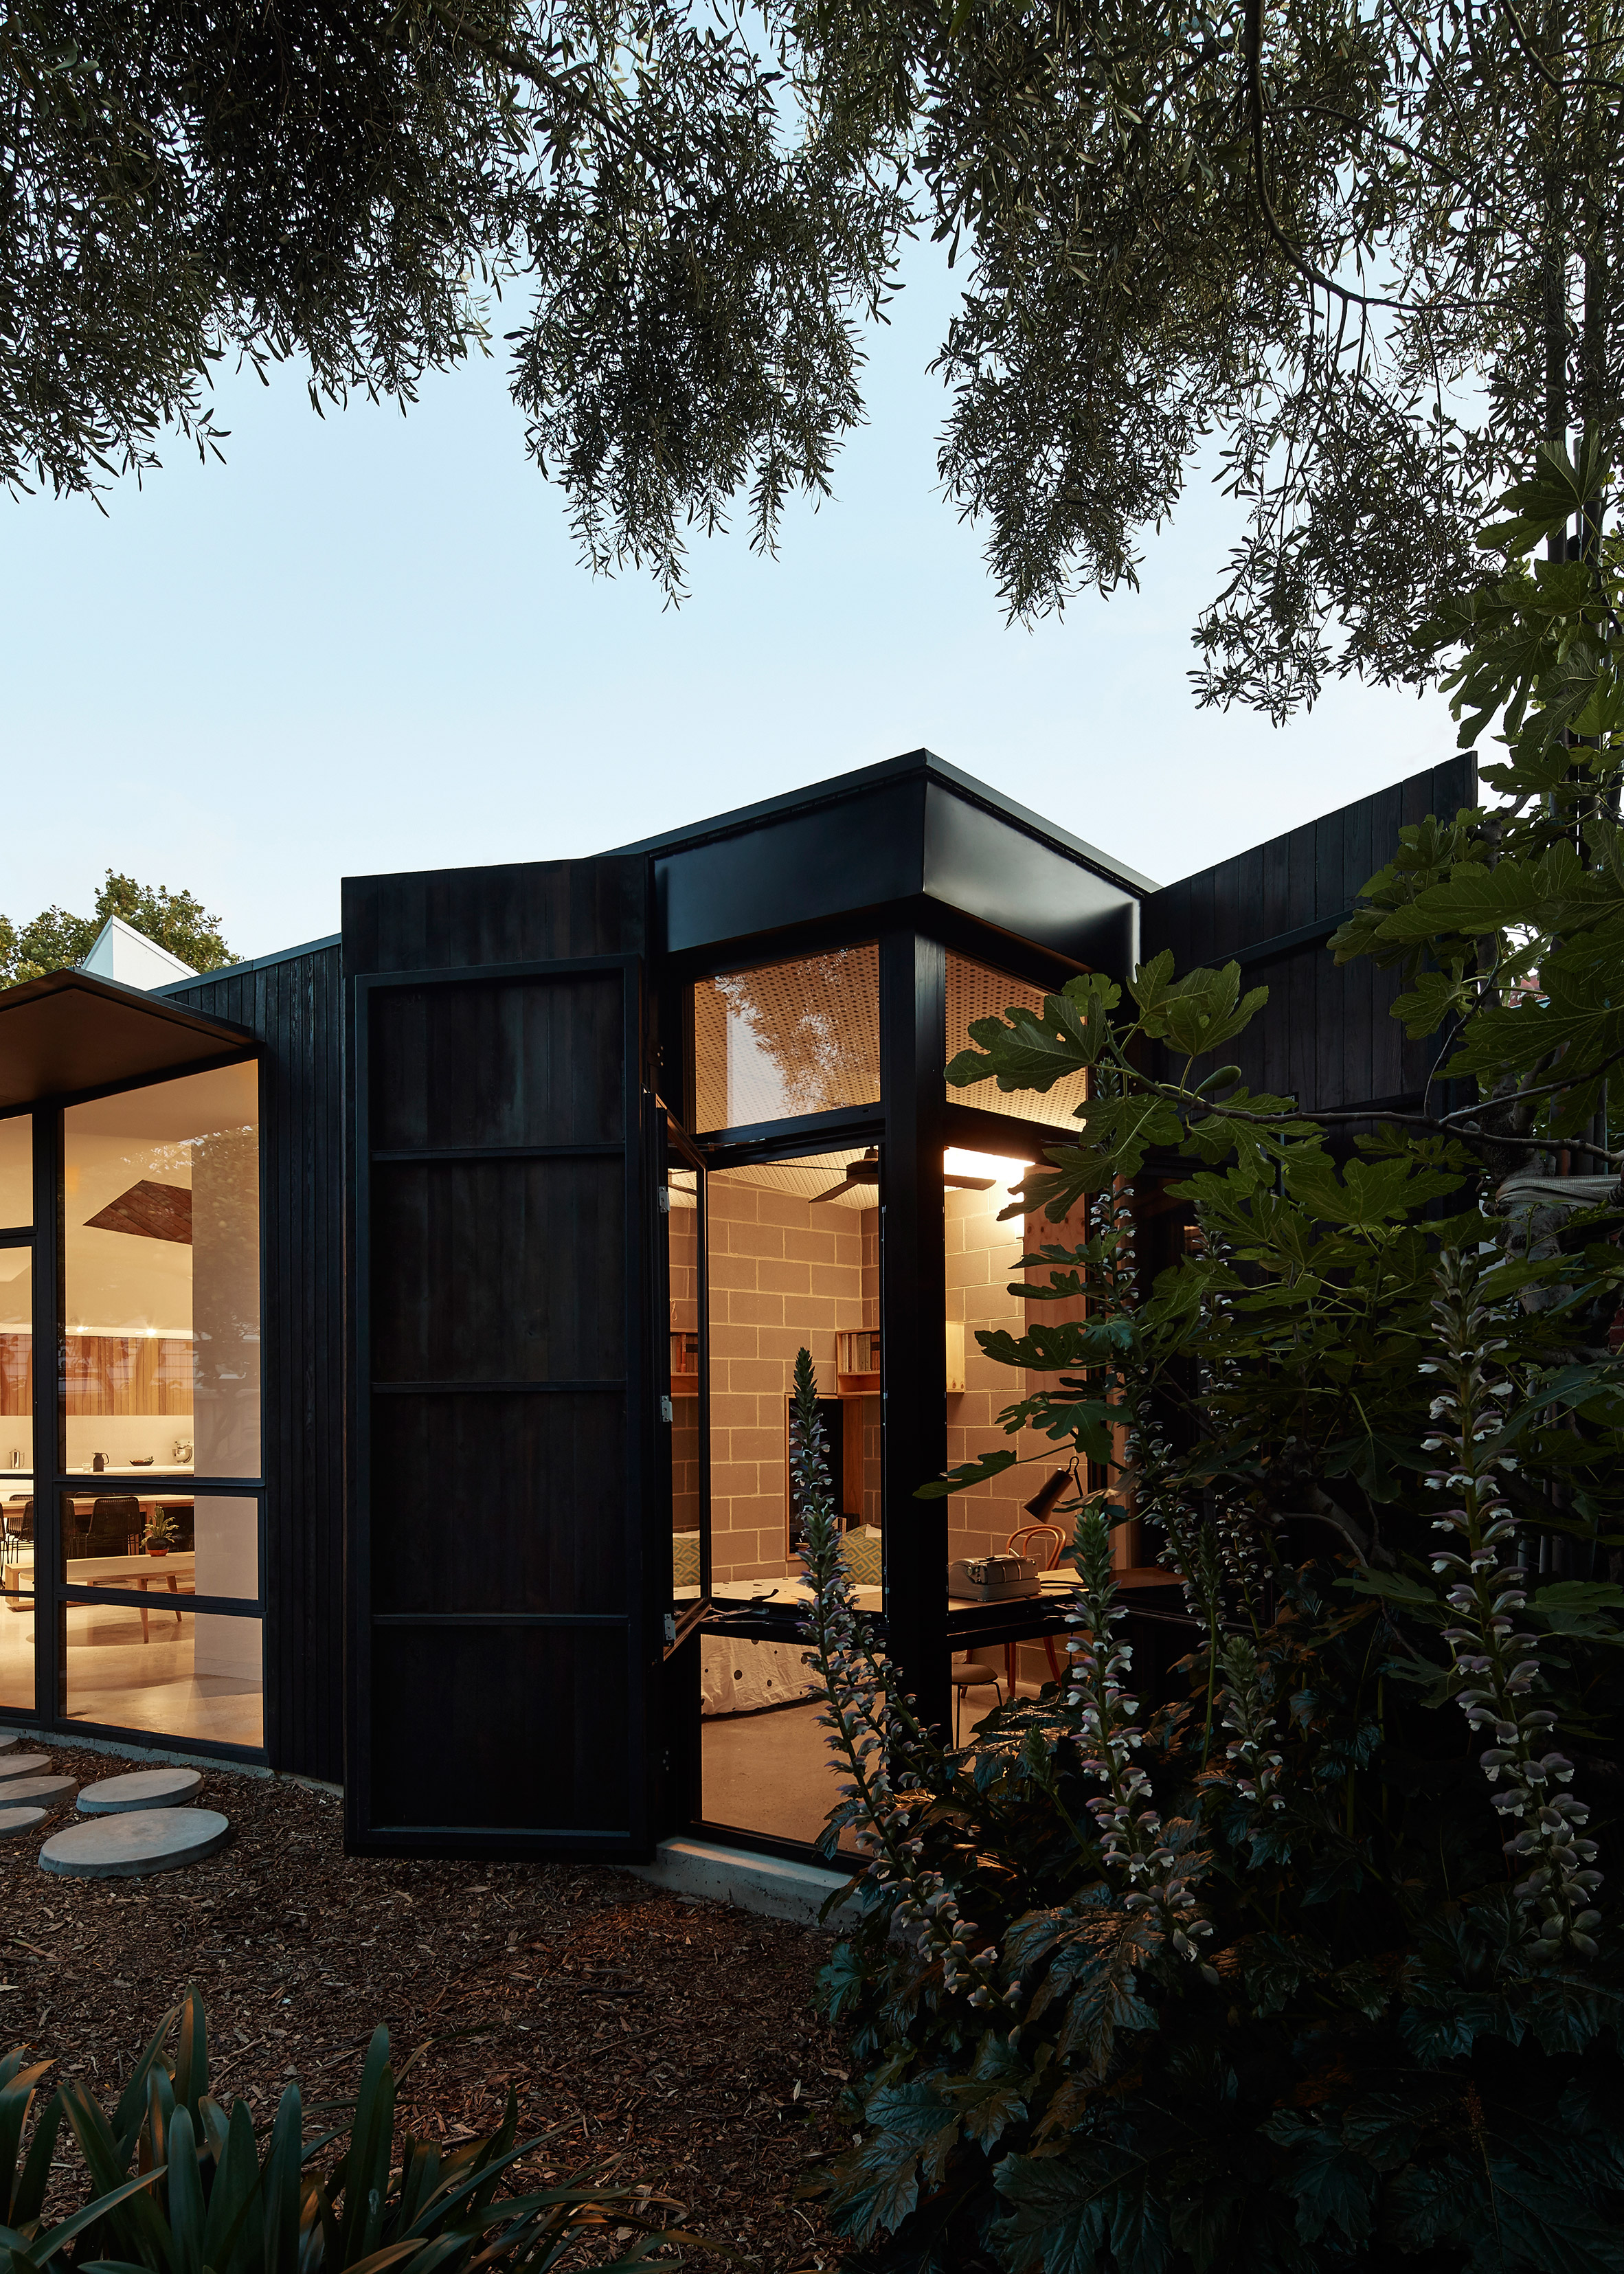 Bloxas Architecture Designs Wood House for Sleeping-Disorder Sufferer bloxas architecture Bloxas Architecture Designs Wood House for Sleeping-Disorder Sufferer Bloxas Architecture Designs Wood House for Sleeping Disorder Sufferer 3